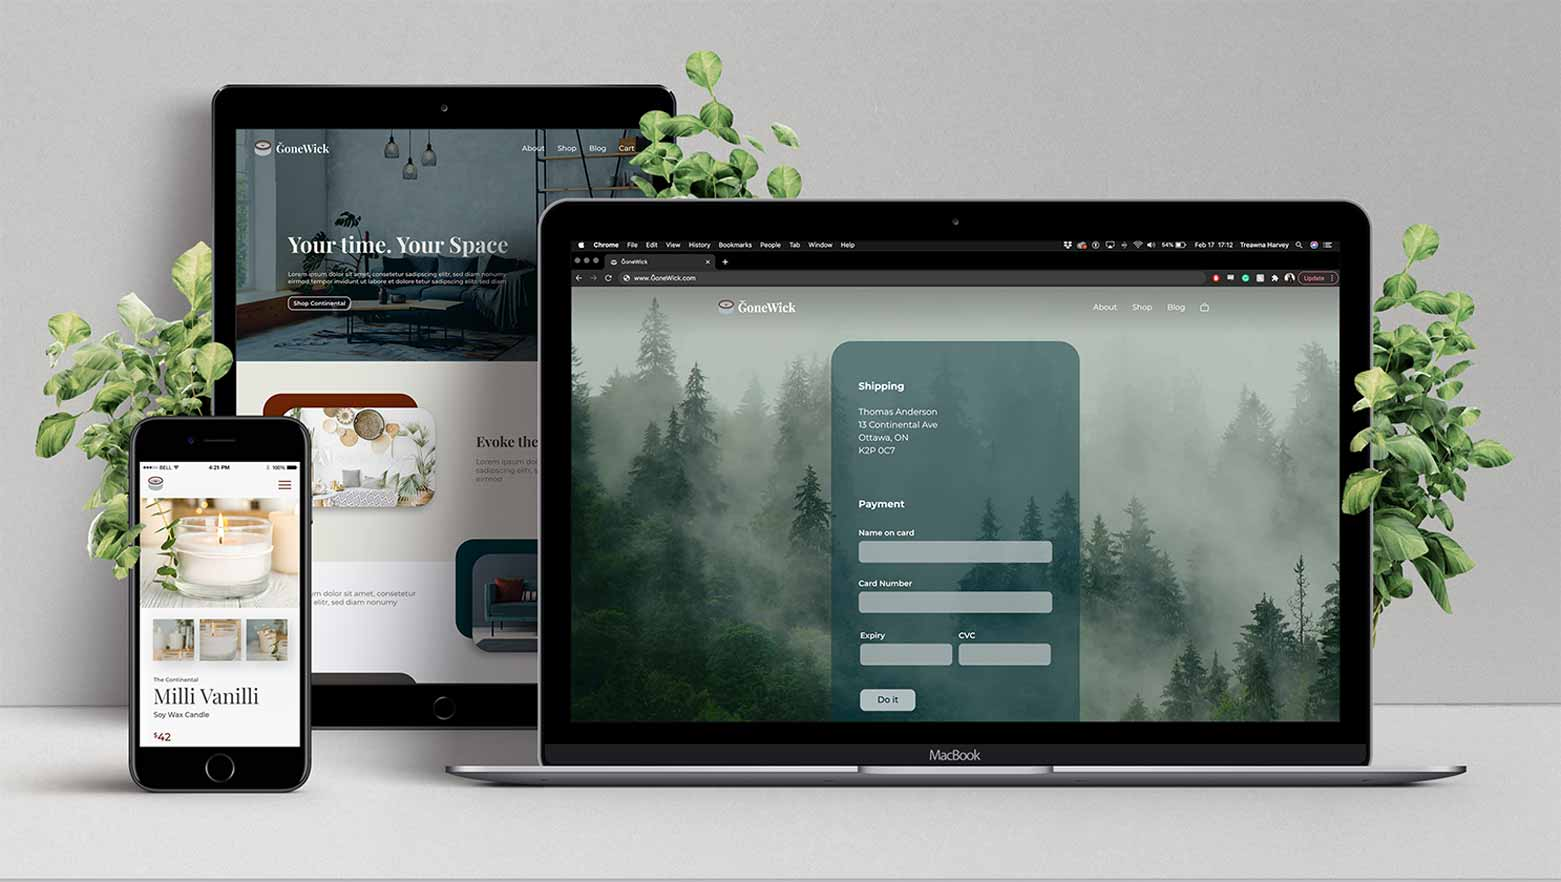 Branding and code for ĞoneWick, a fictional eCommerce website that sells home decor products.